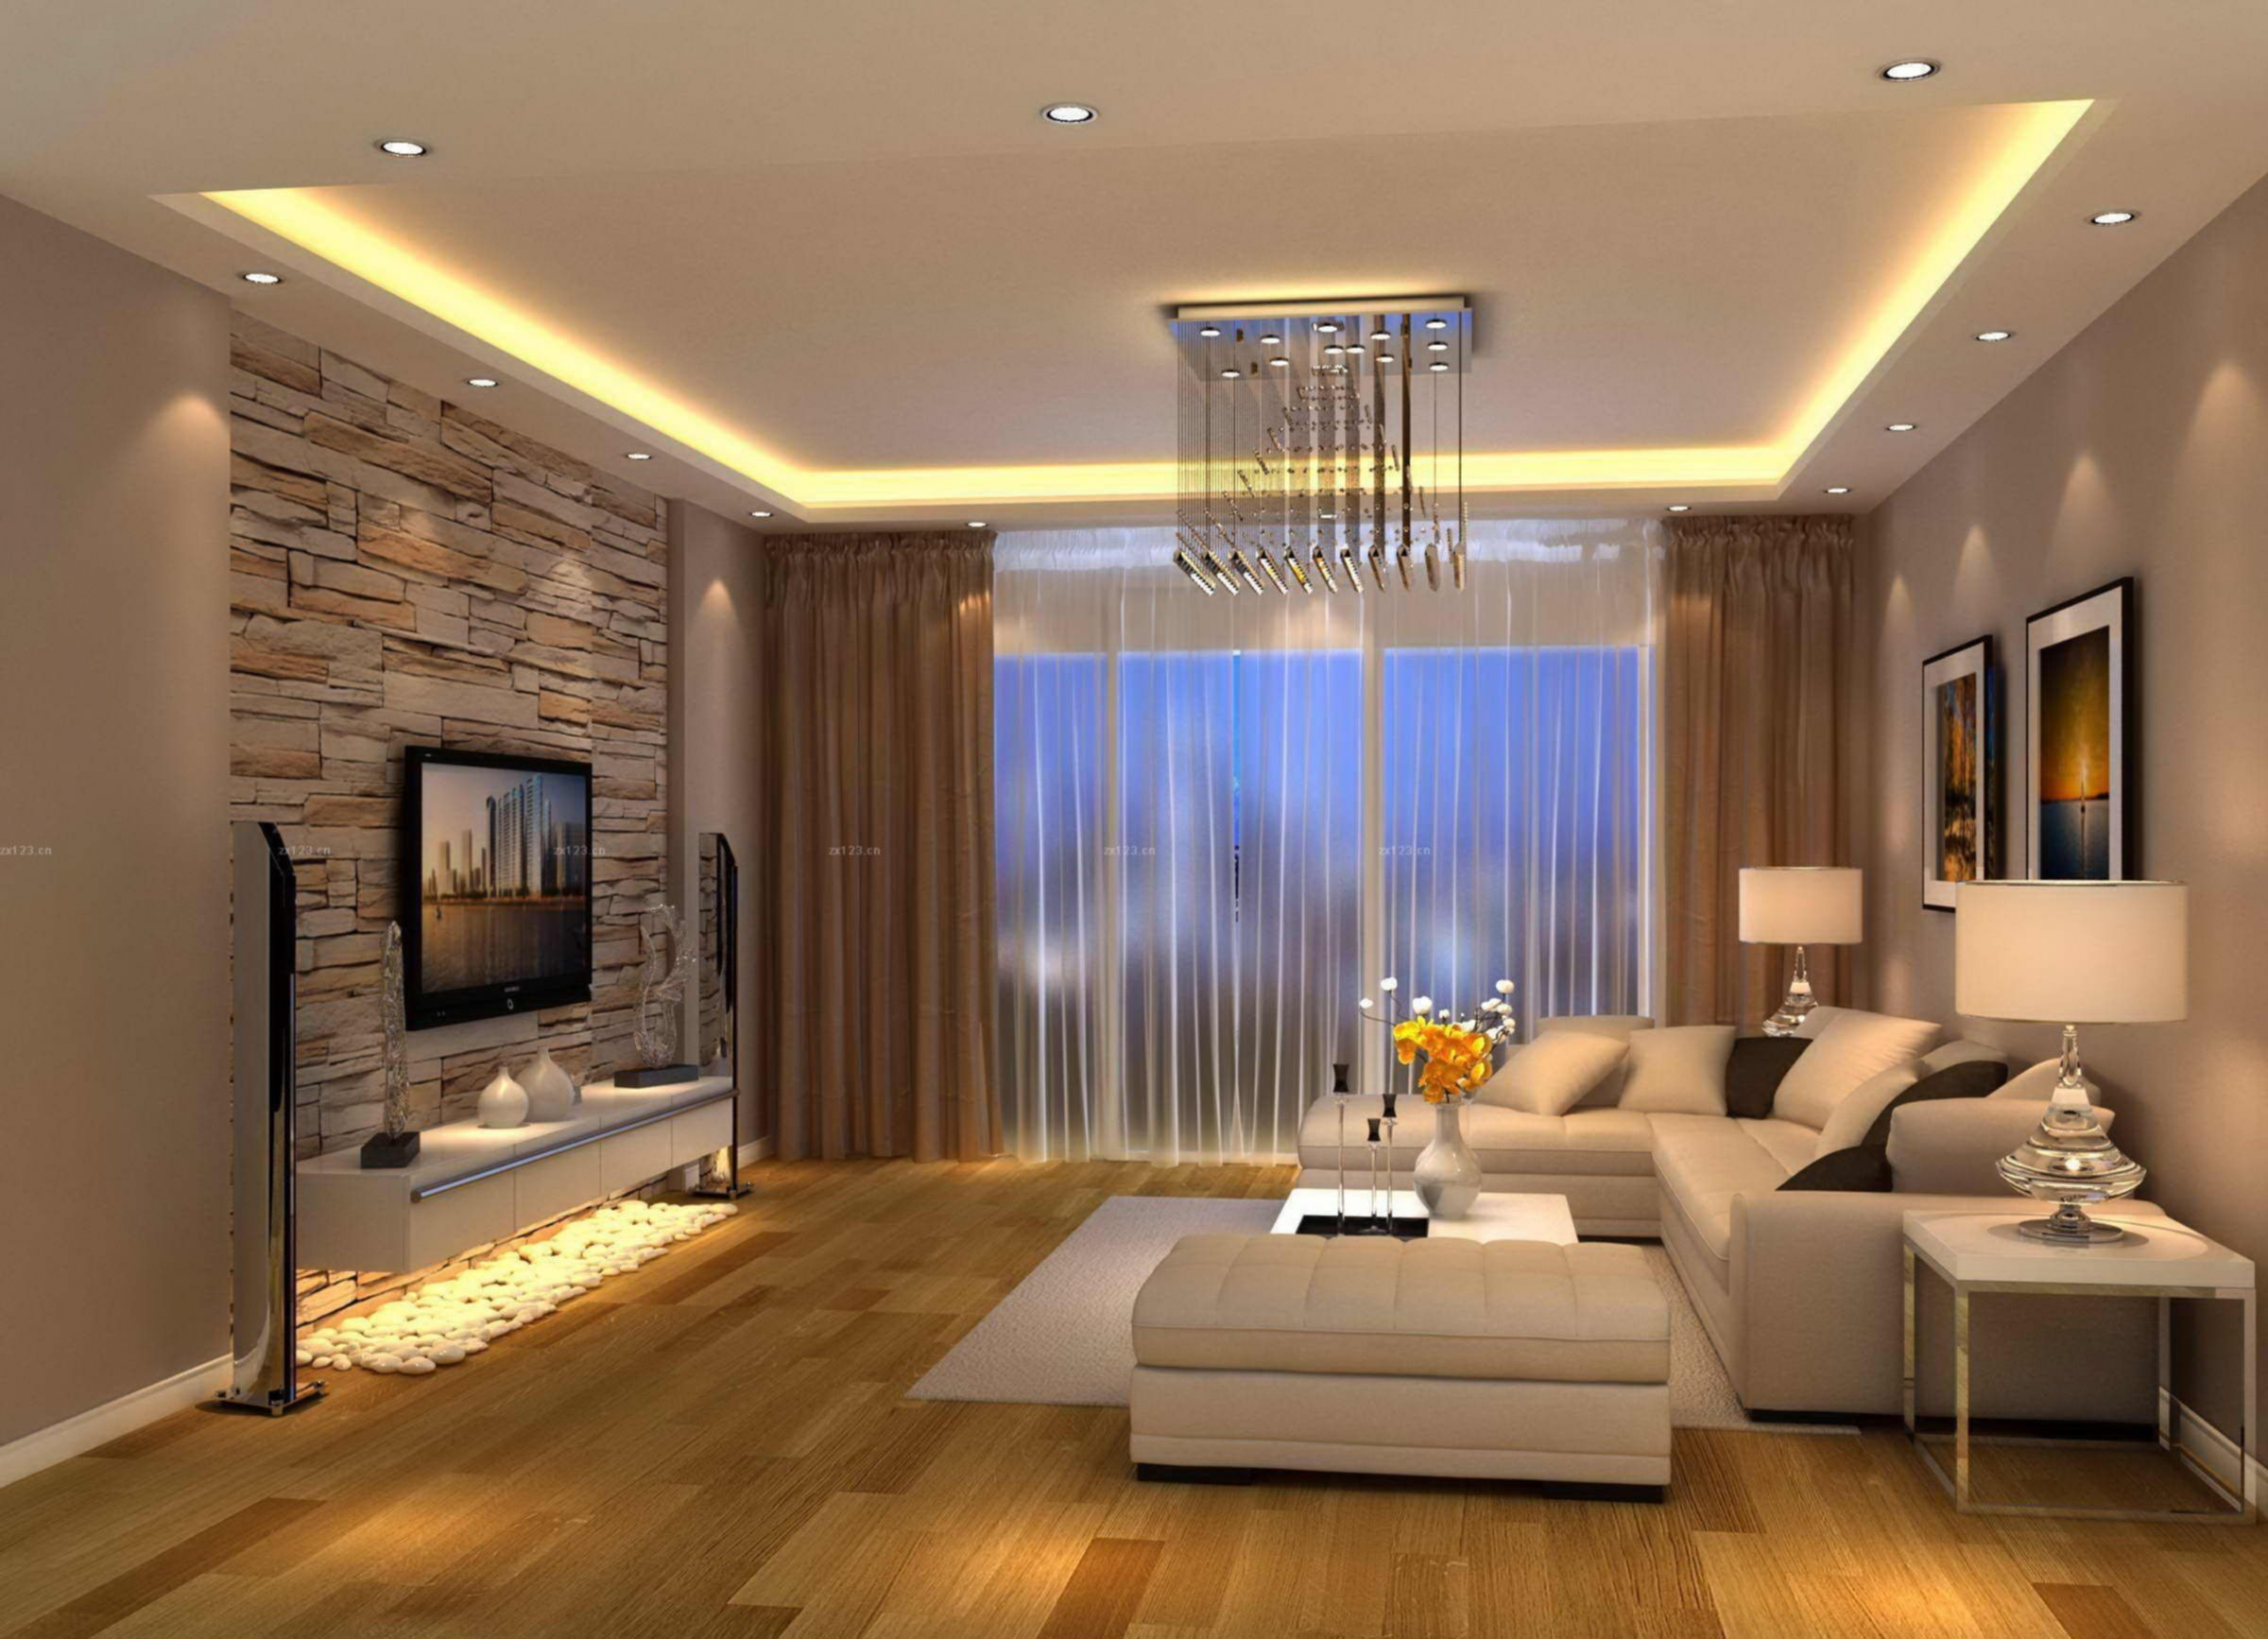 Illuminazione Per Soggiorno Moderno best 9 modern living room design and decor ideas (with